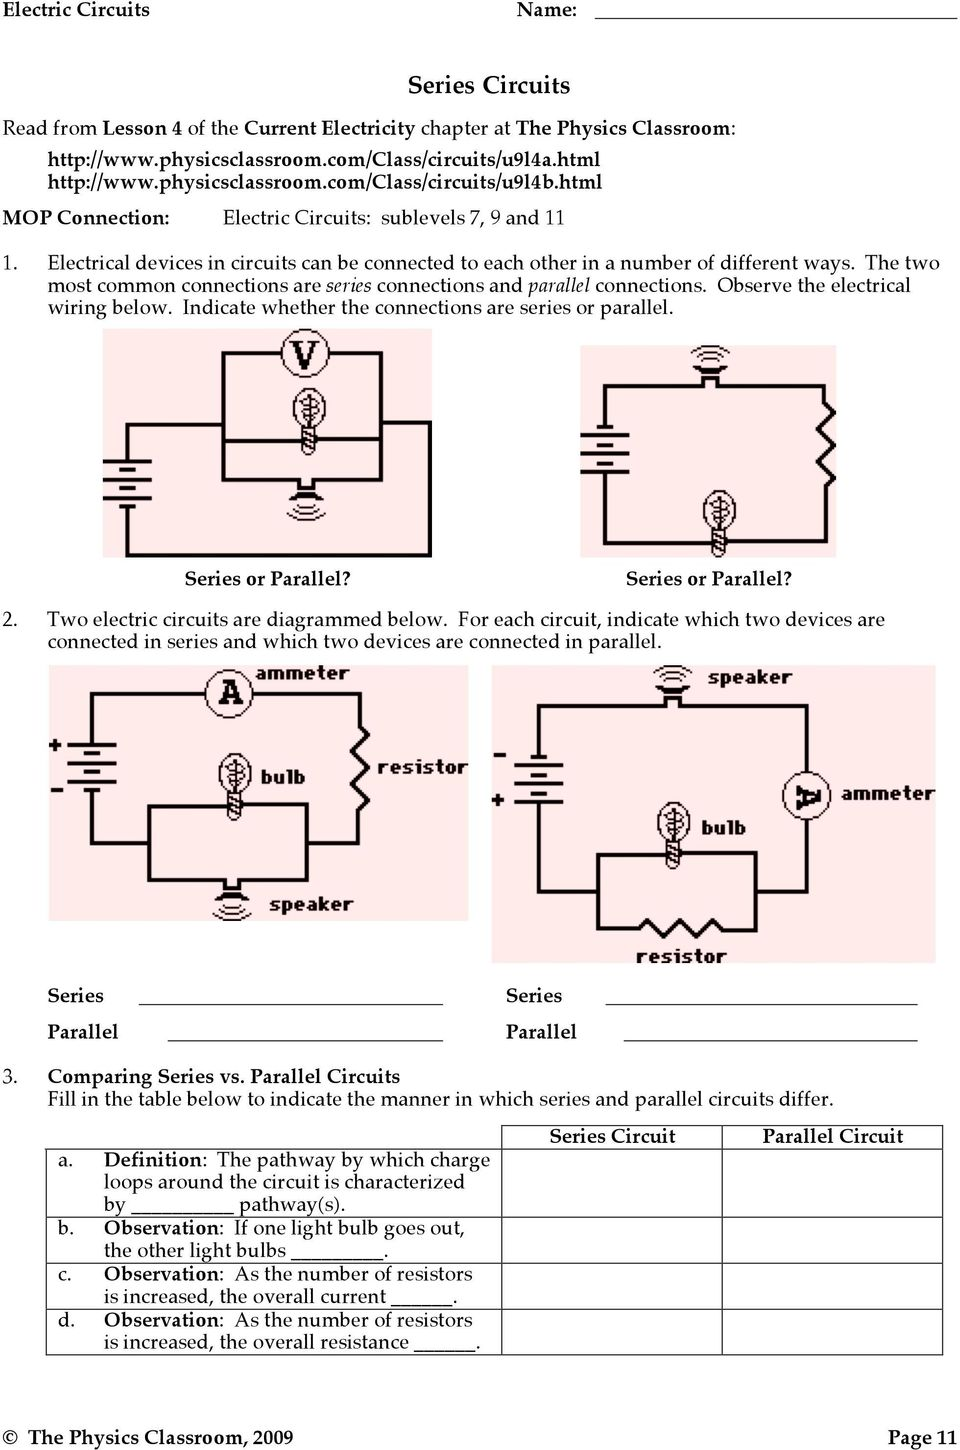 Electric Potential Difference Pdf Parallel And Series Circuits The Two Most Common Connections Are Observe Electrical Wiring